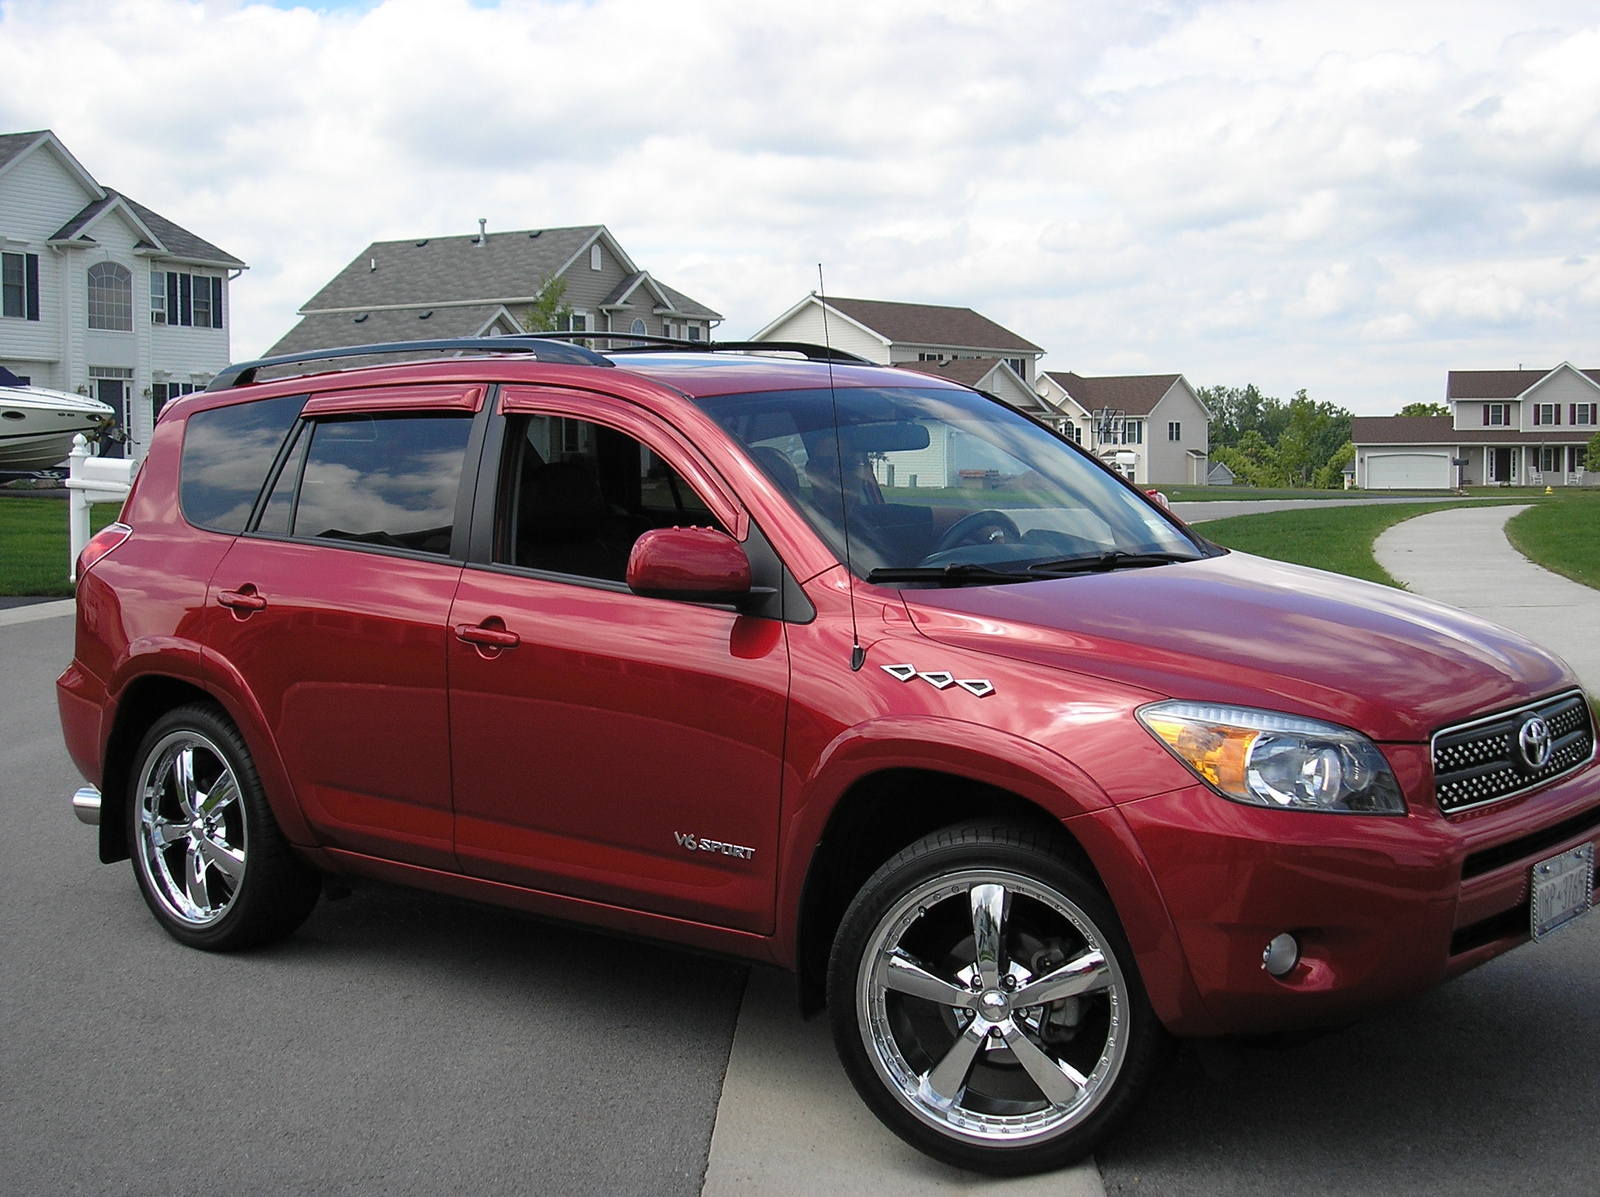 2006 toyota rav4 iii pictures information and specs. Black Bedroom Furniture Sets. Home Design Ideas